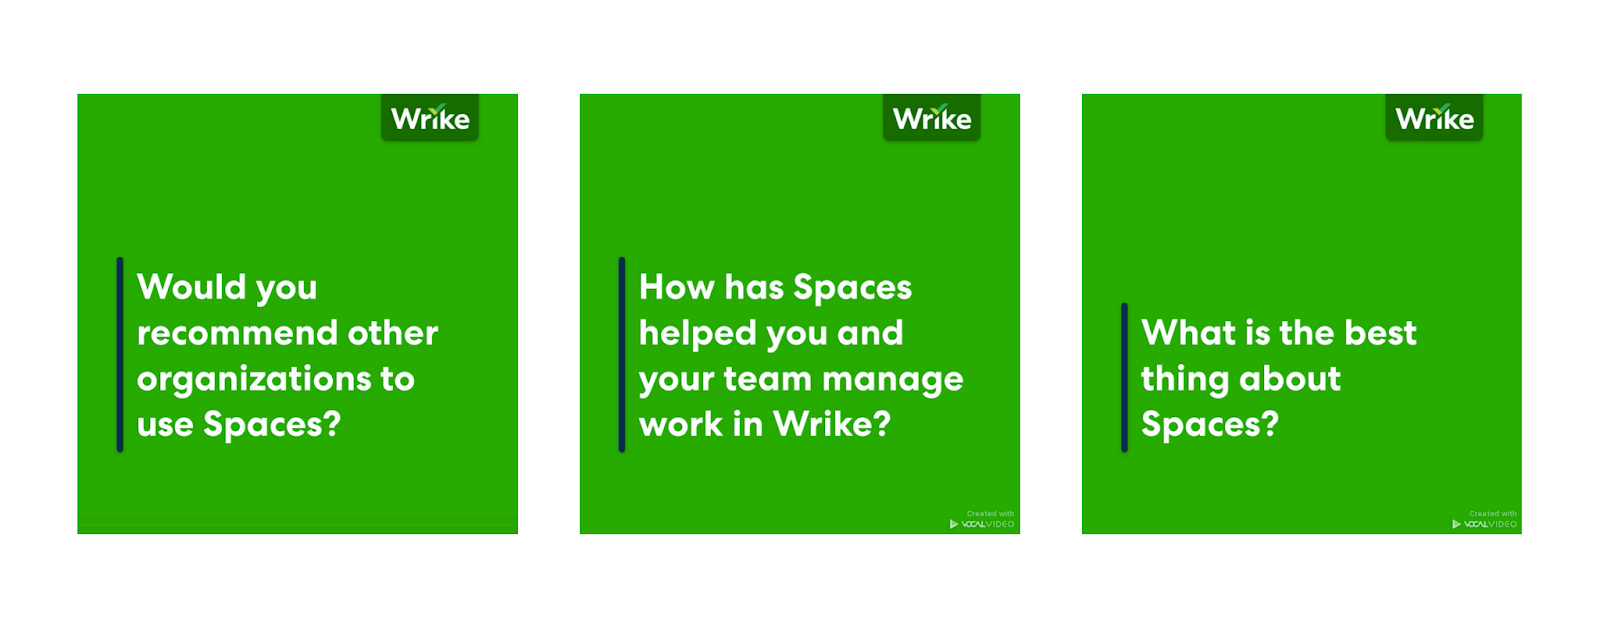 """Interstitial slides for Wrike: """"Would you recommend other organizations to use Spaces?"""" and """"How has Spaces helped you and your team manage work in Wrike?"""" and """"What is the best thing about Spaces?"""""""